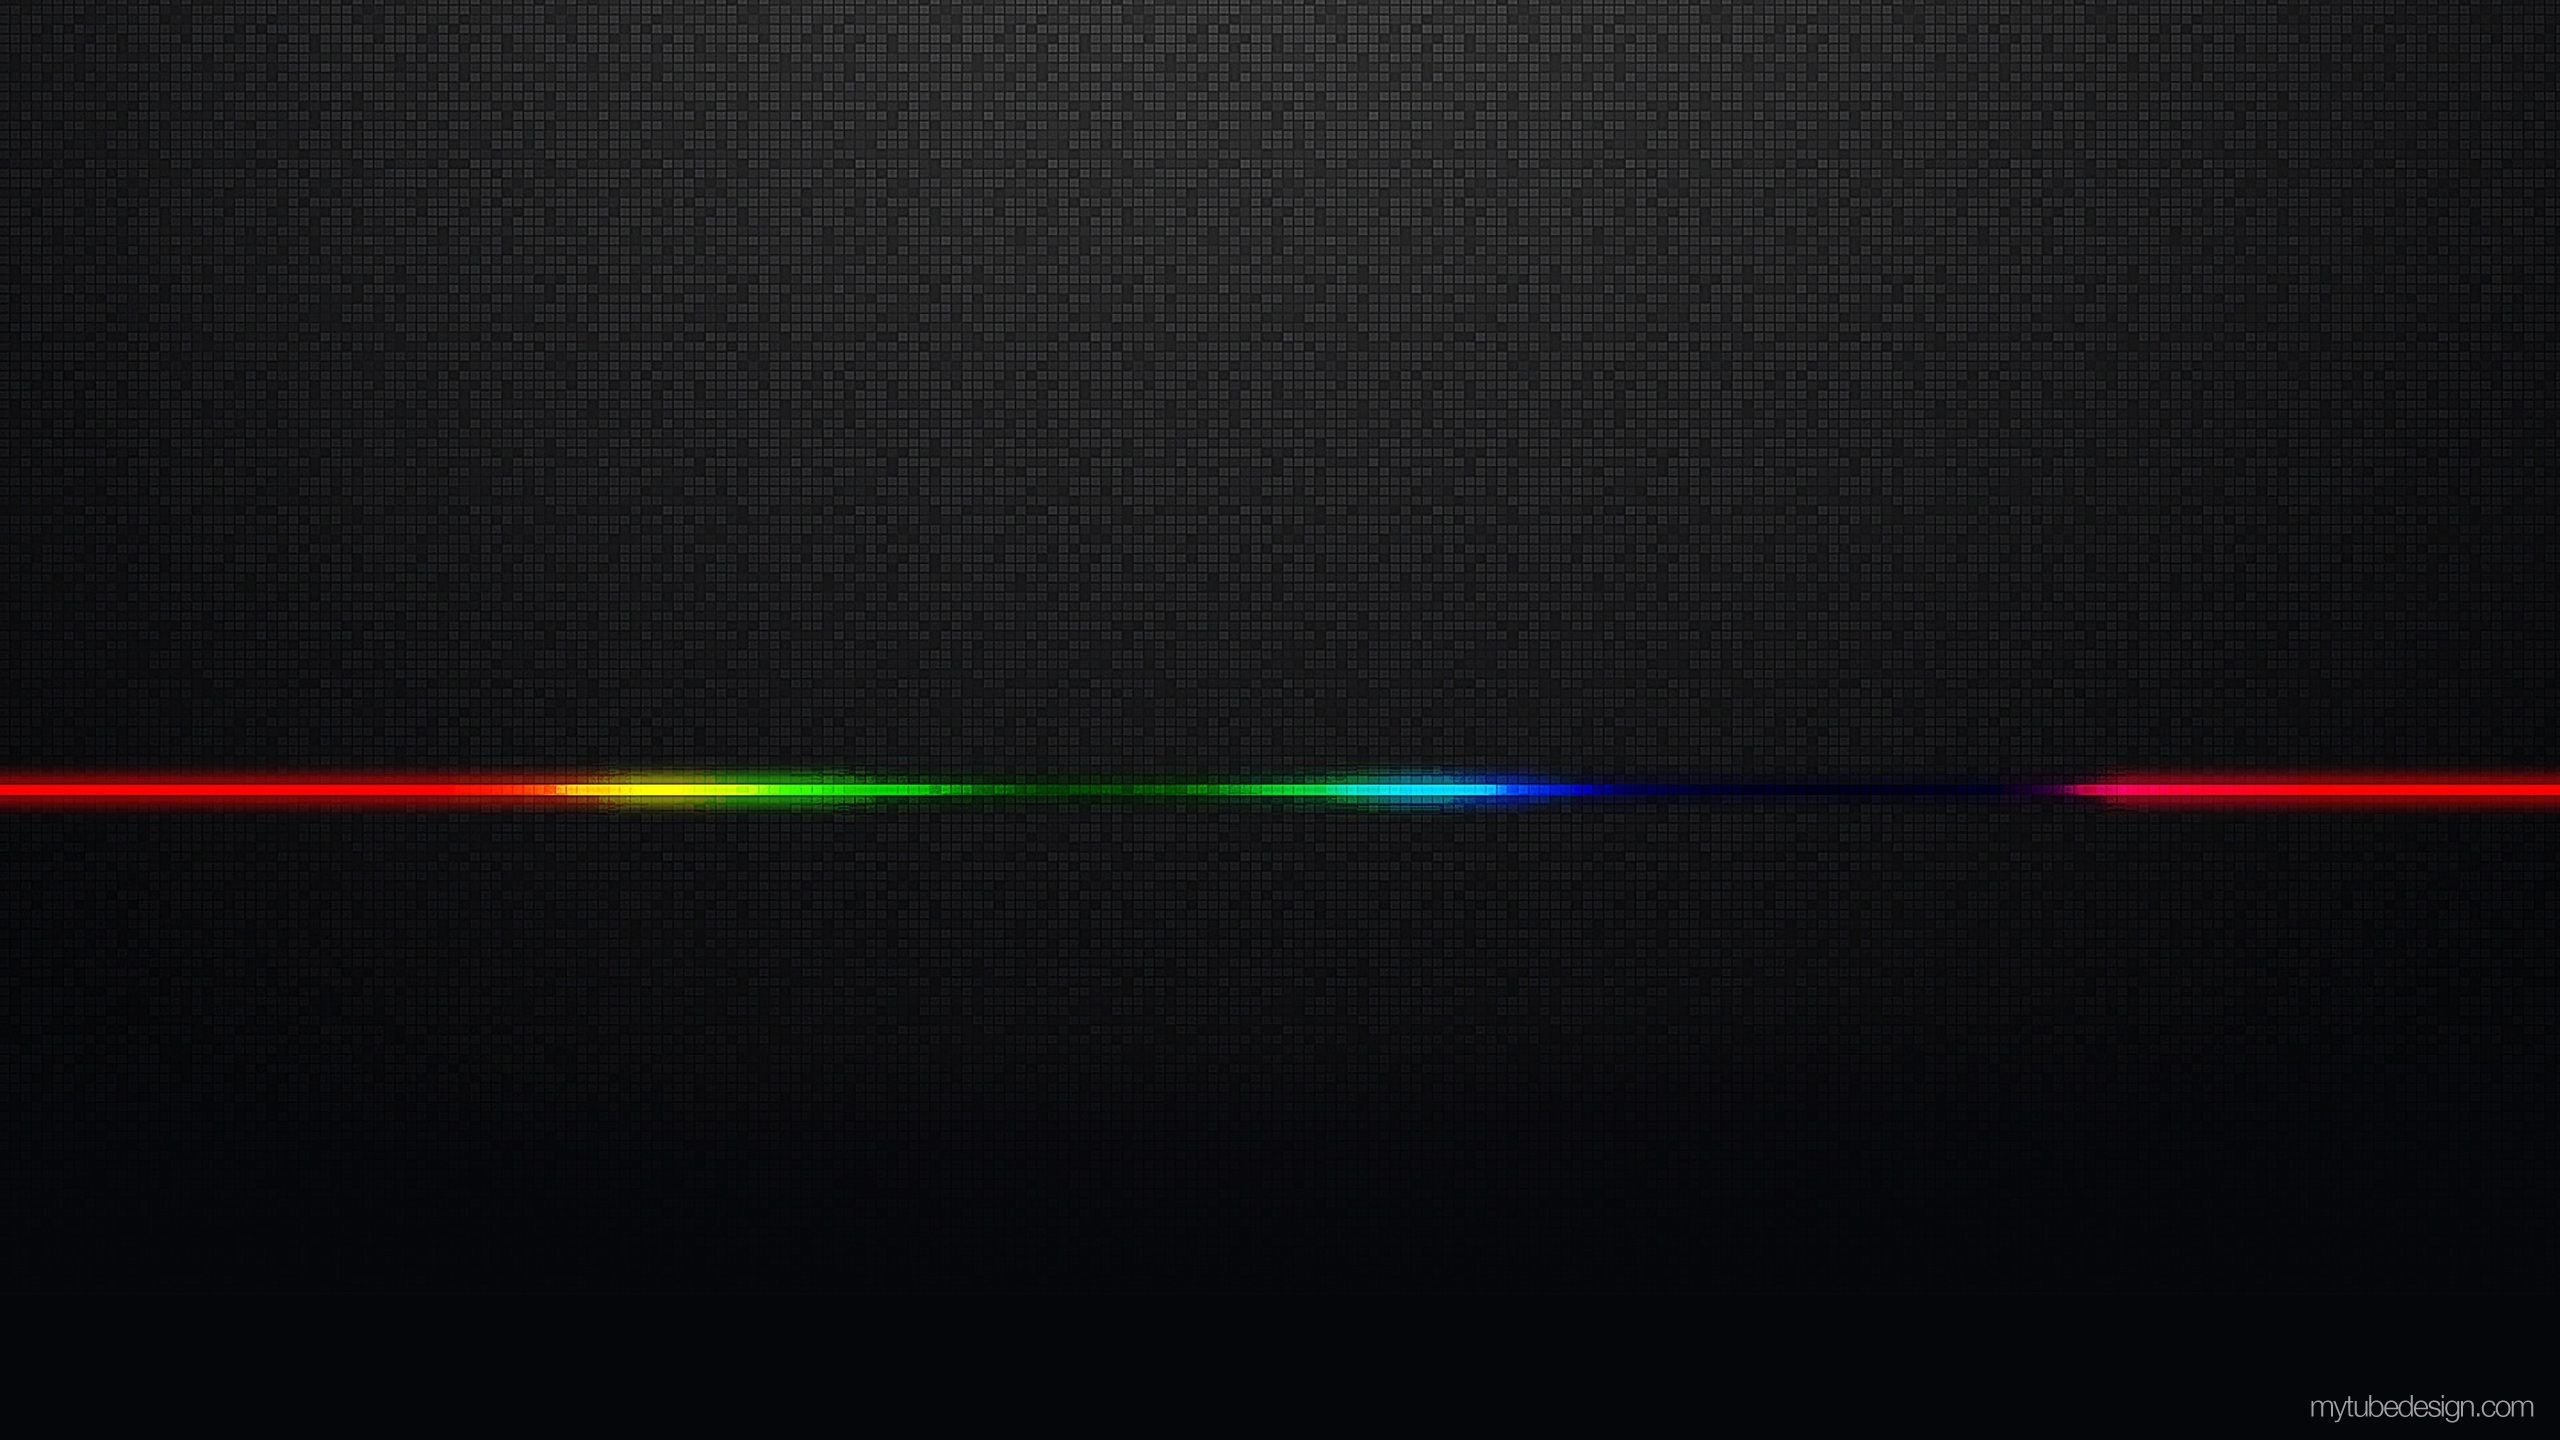 2560x1440 Wallpaper for Youtube (83+ images)